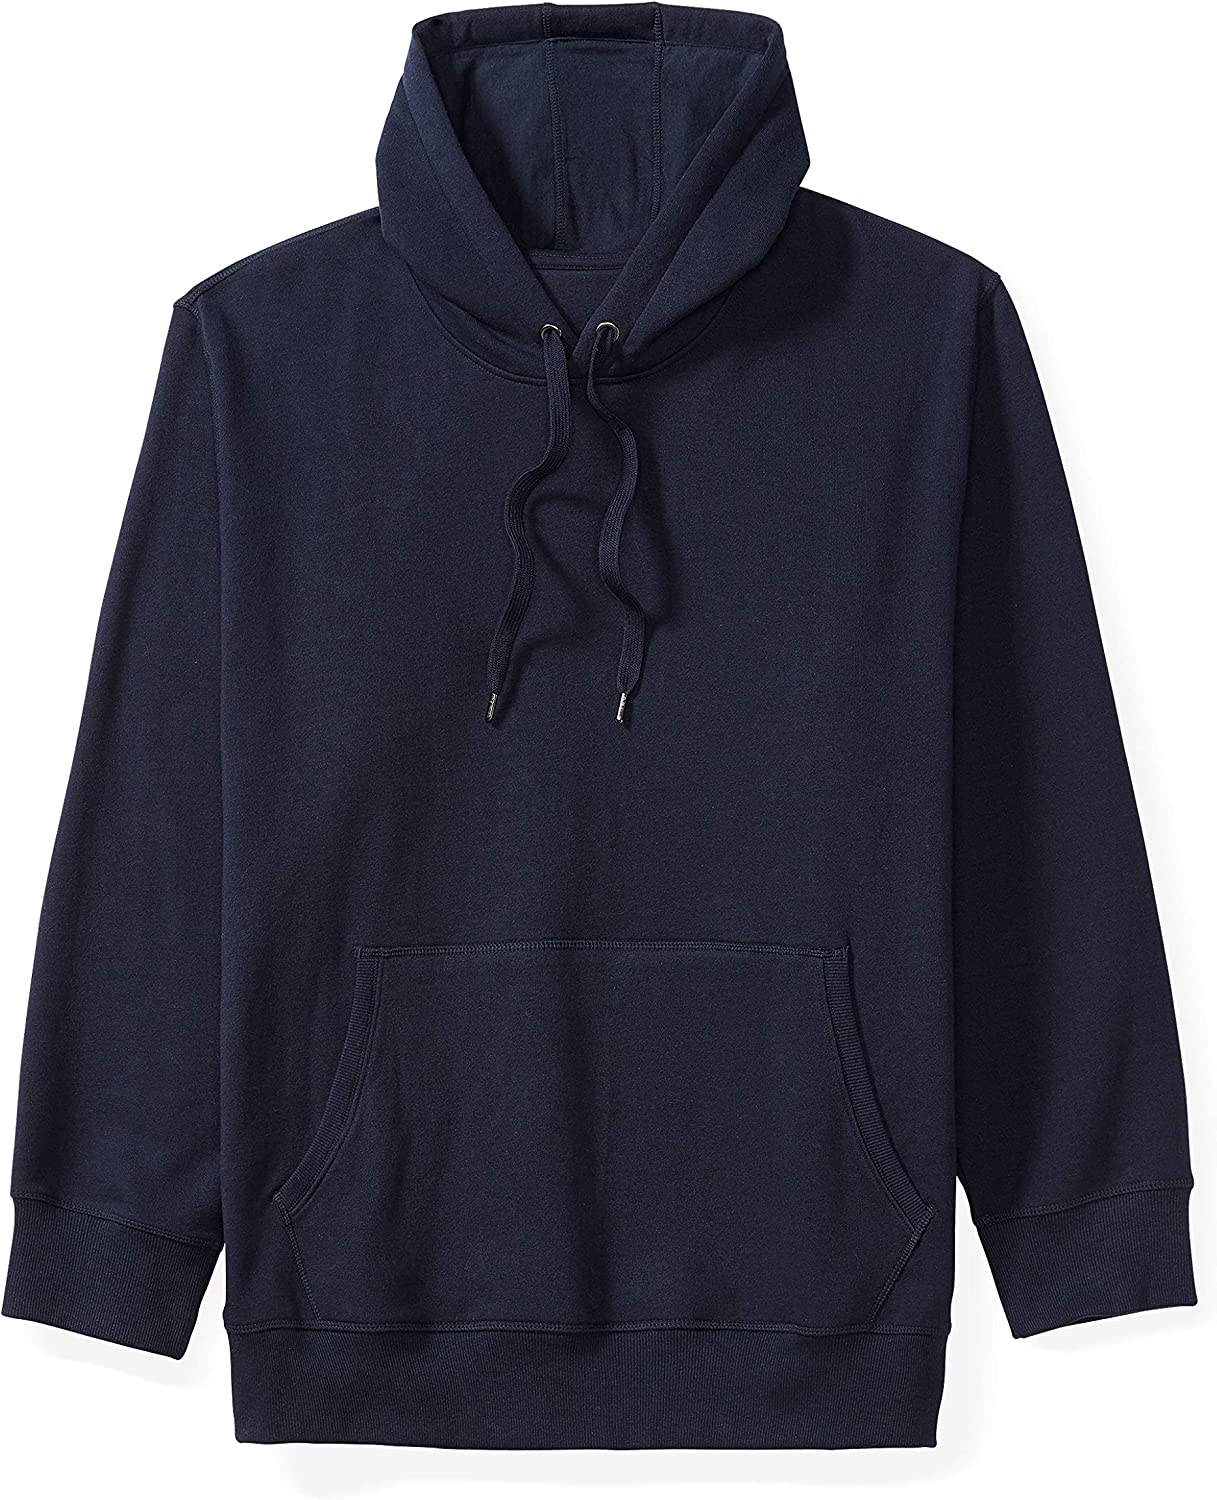 Essentials Men's Big & Tall Hooded Fleece Sweatshirt fit by DXL: Clothing